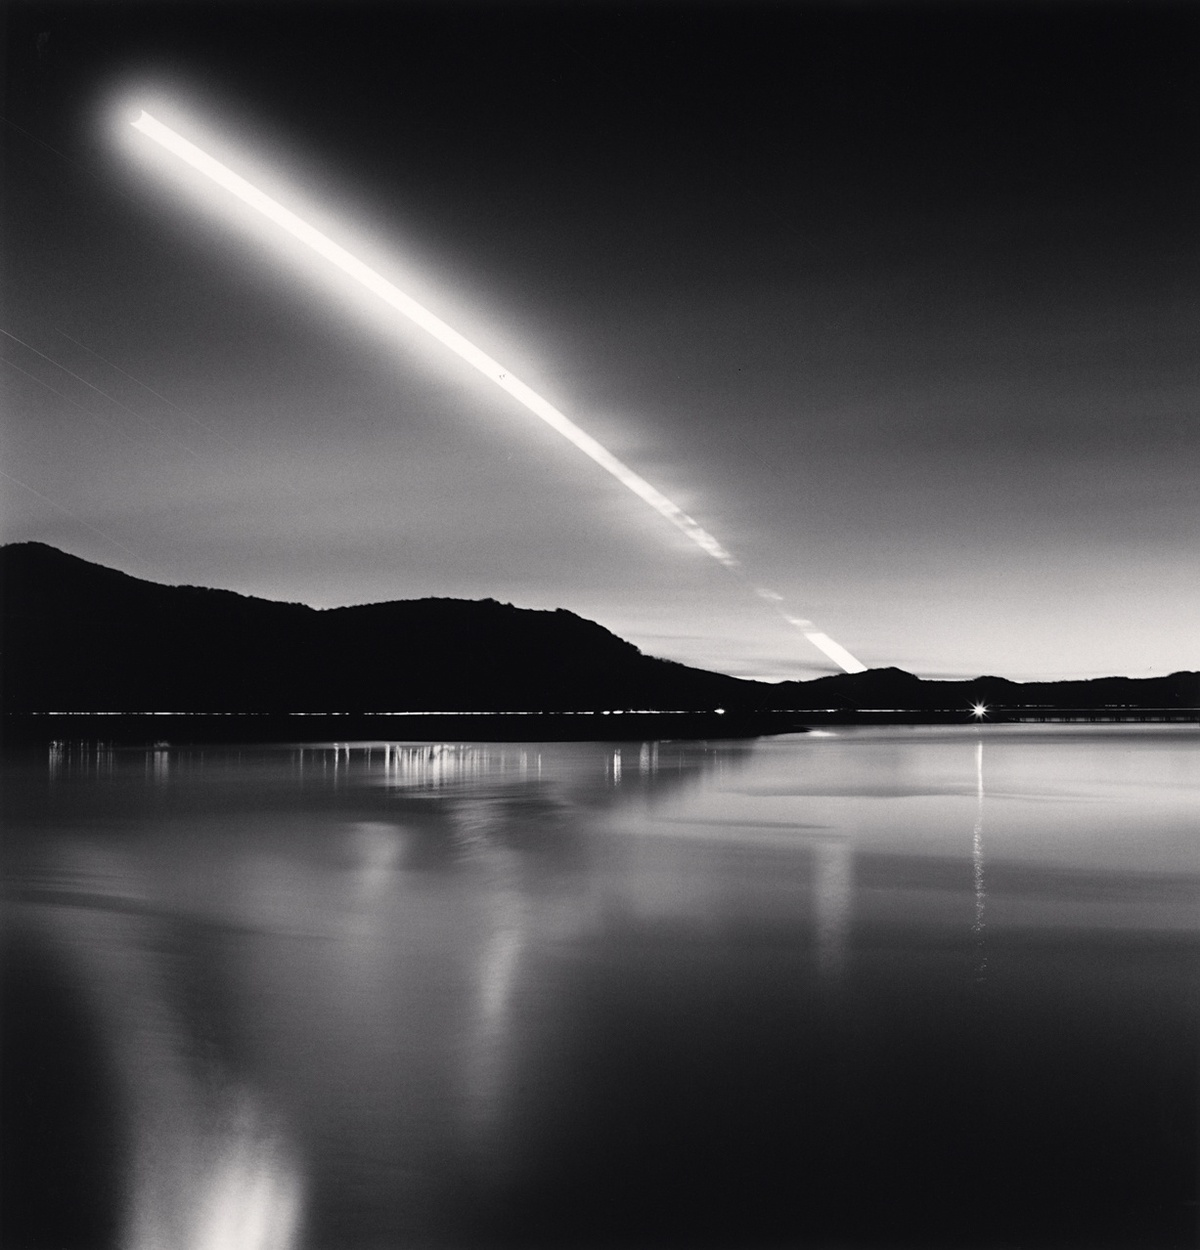 Michael Kenna Moon Set, Lake Campotosto, Abruzzo, Italy 2015 Sepia Toned Silver Gelatin Print From An Edition Of 25 8 x 8 Inches